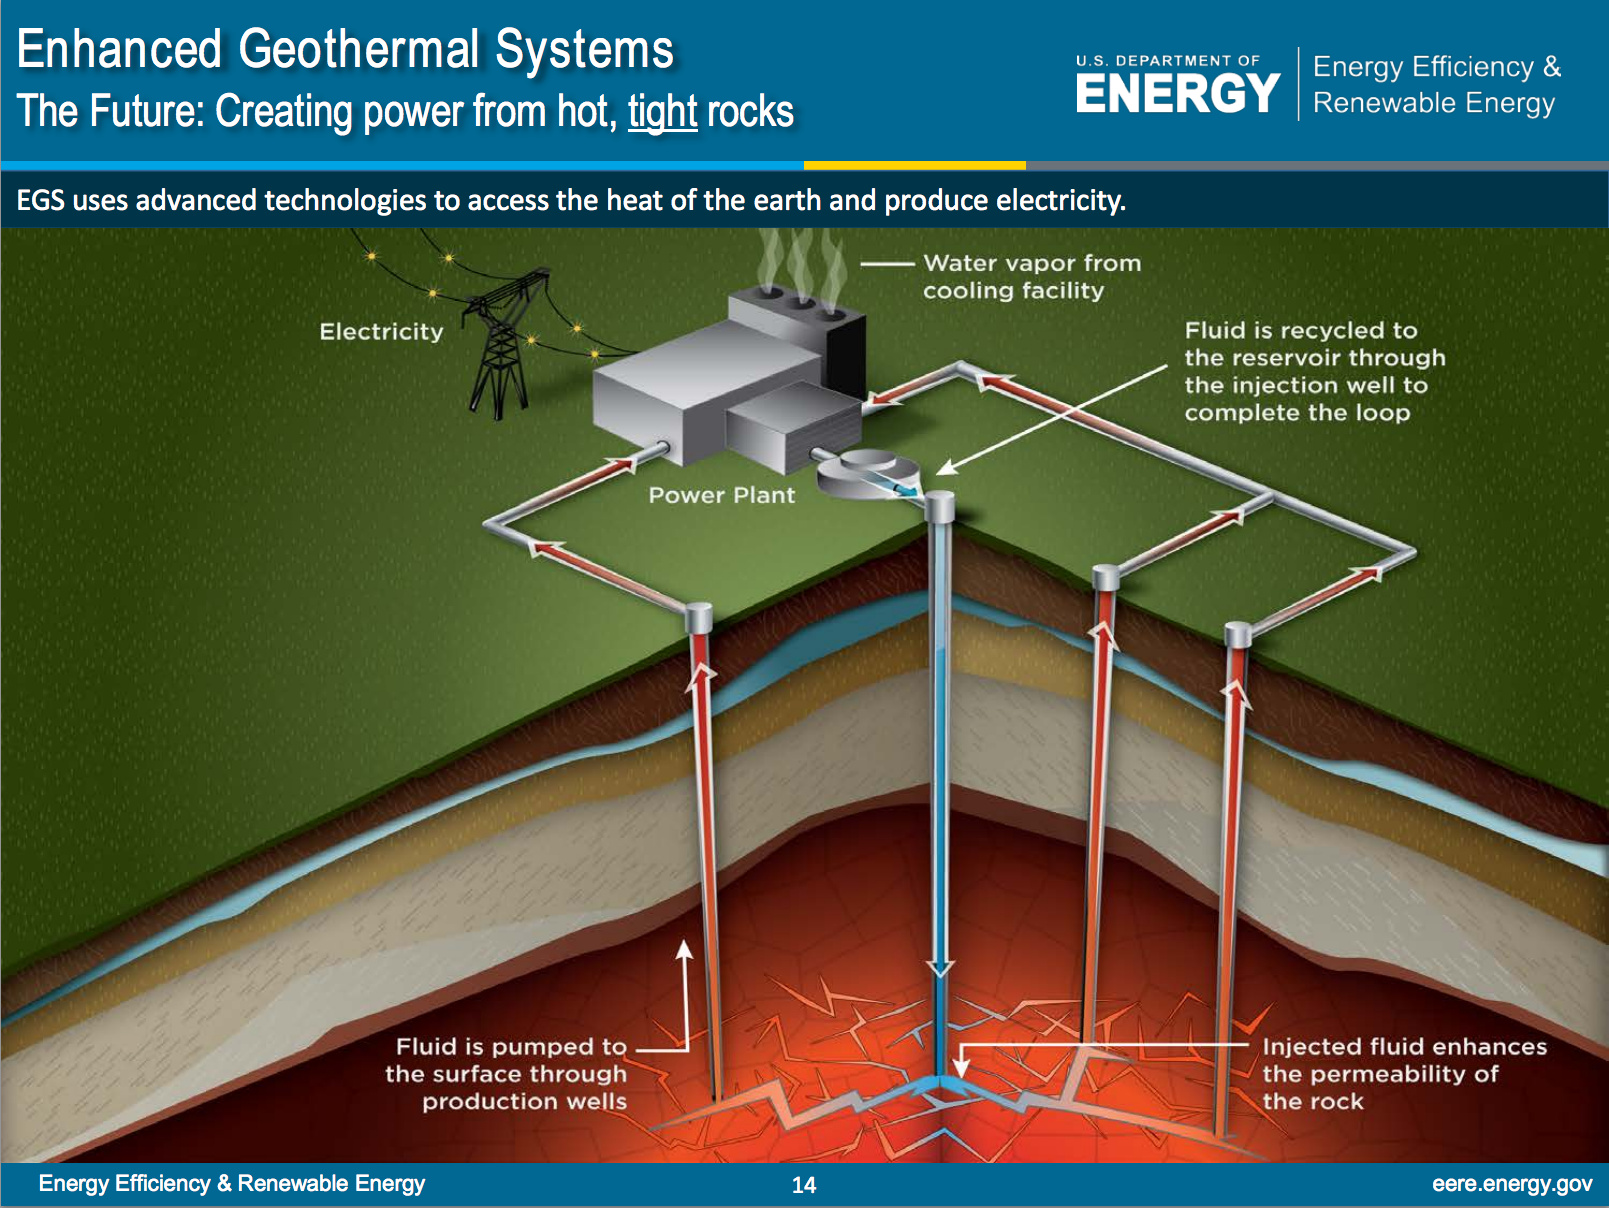 Geothermal energy on emaze using geothermal energy for electricity pooptronica